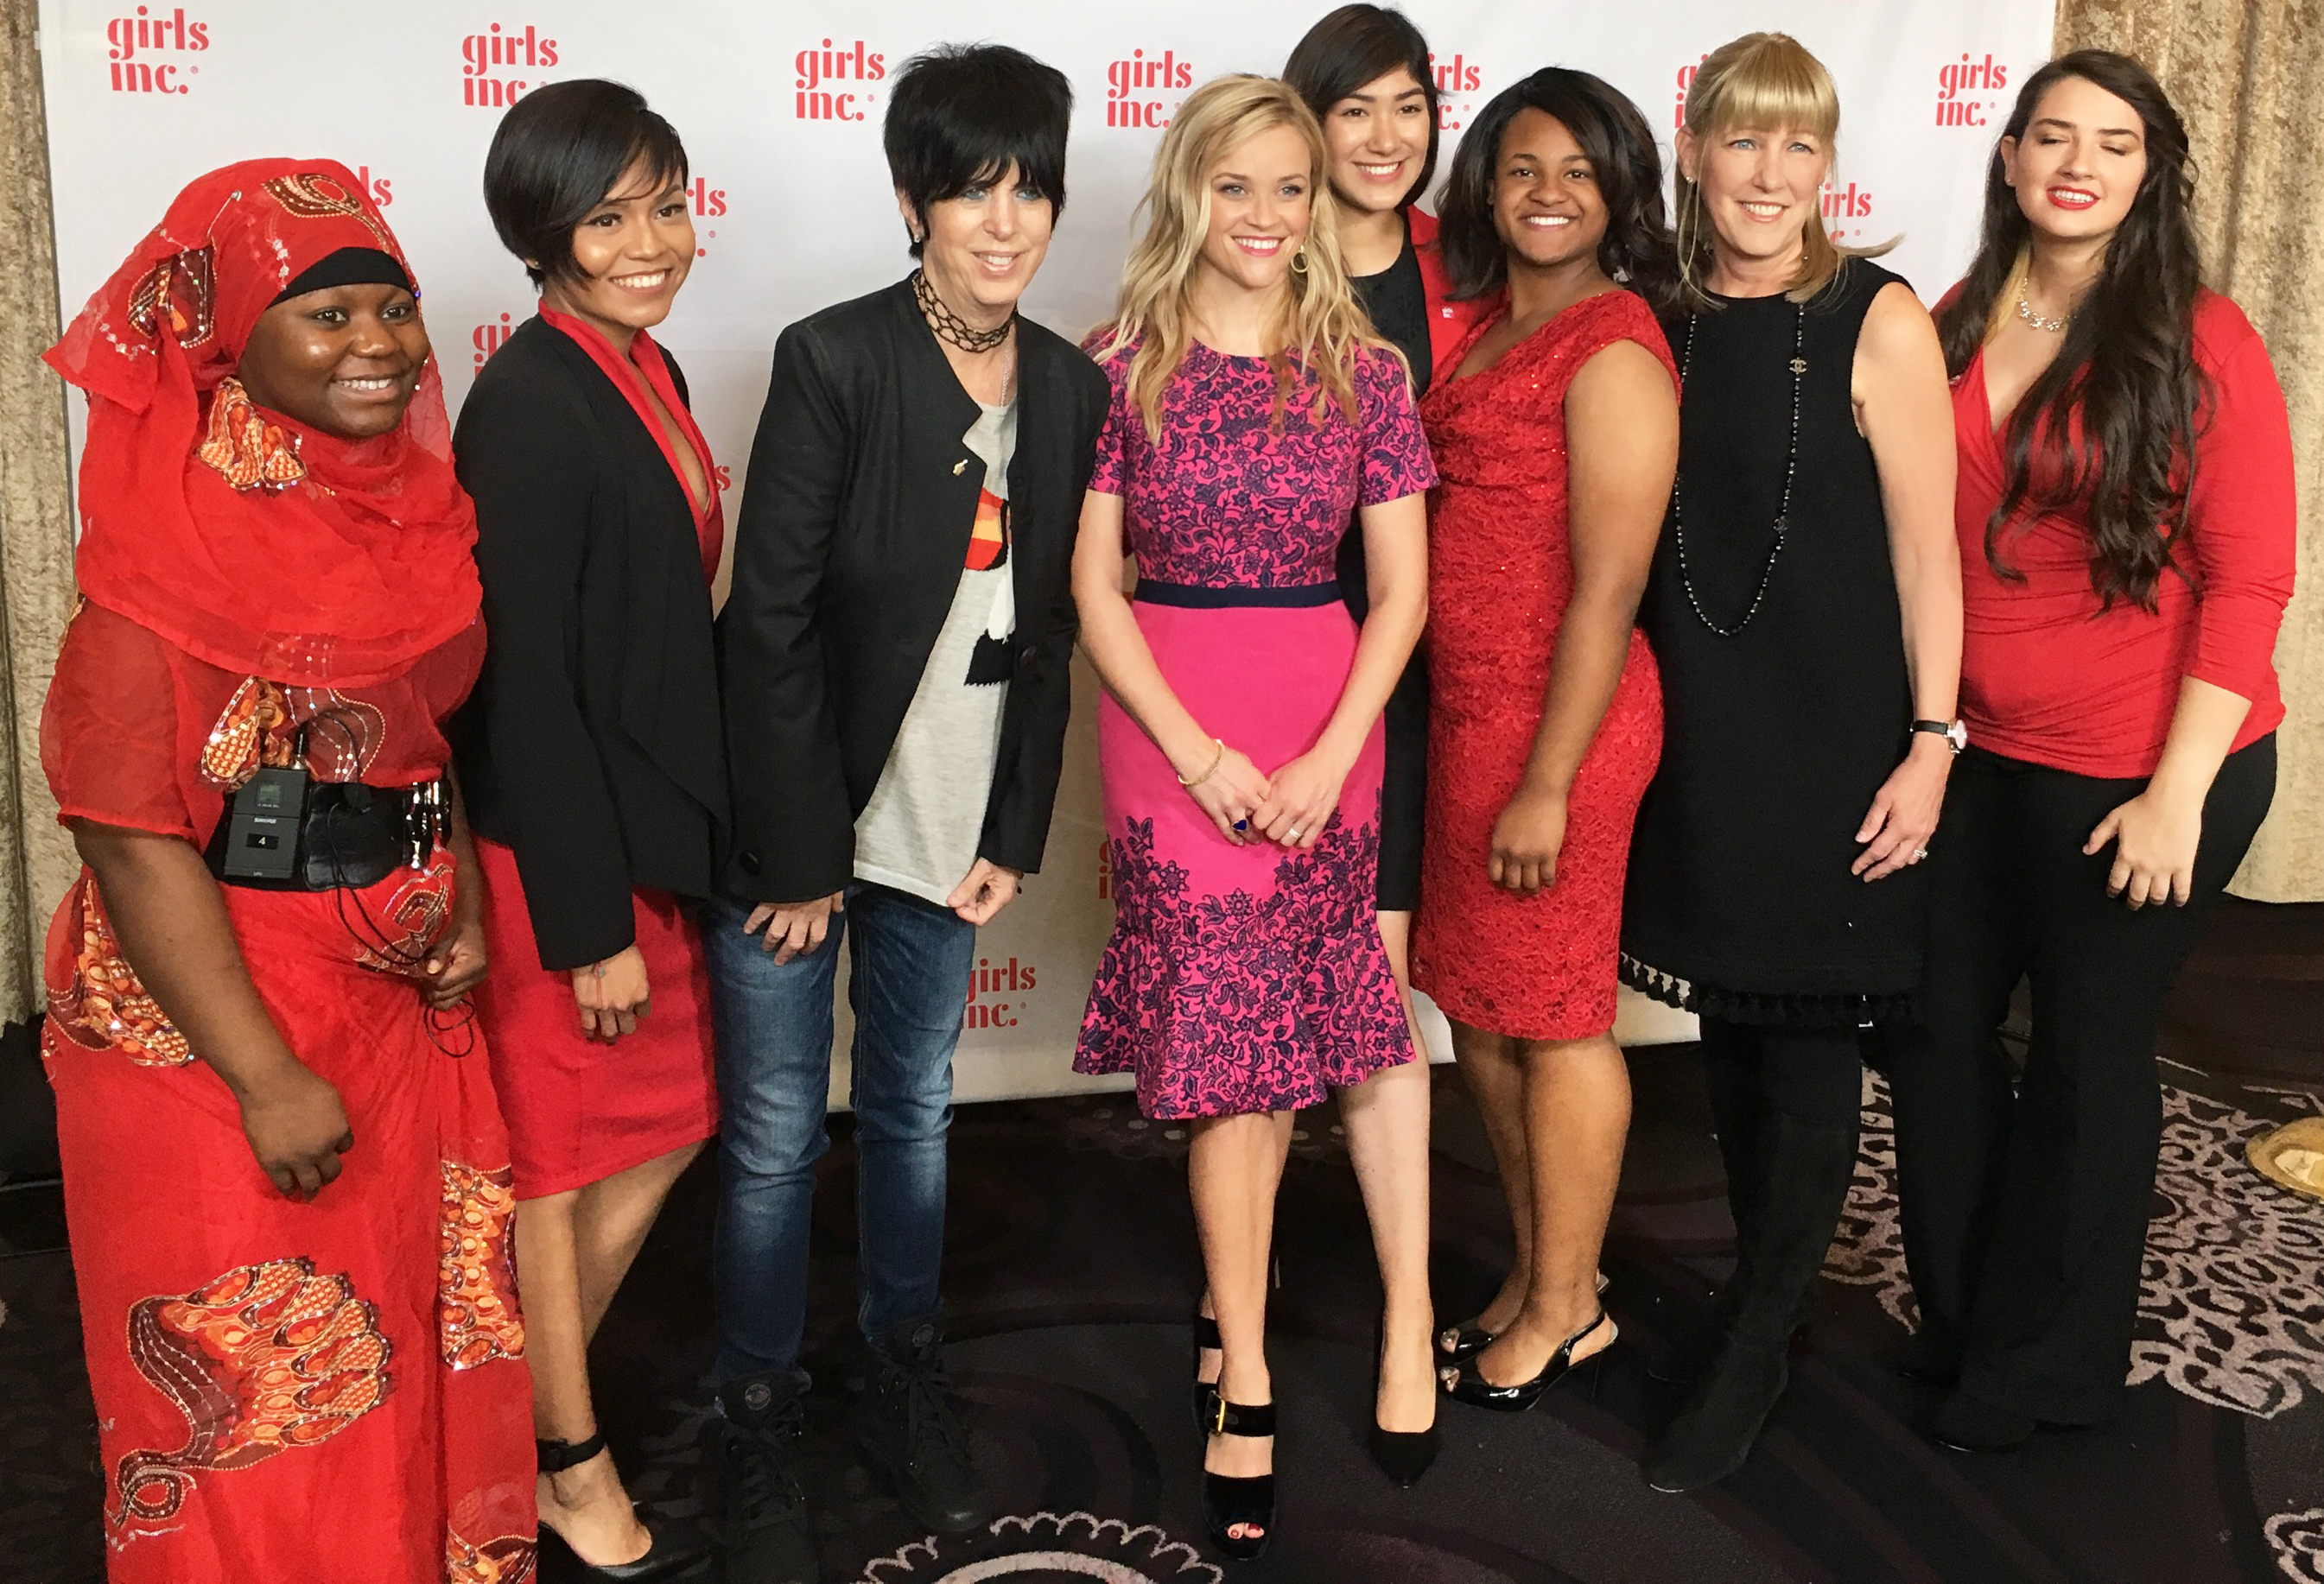 Reese wore a limited edition dress created with the Girls Inc. luncheon in mind. We made a few extra—you can find it here!